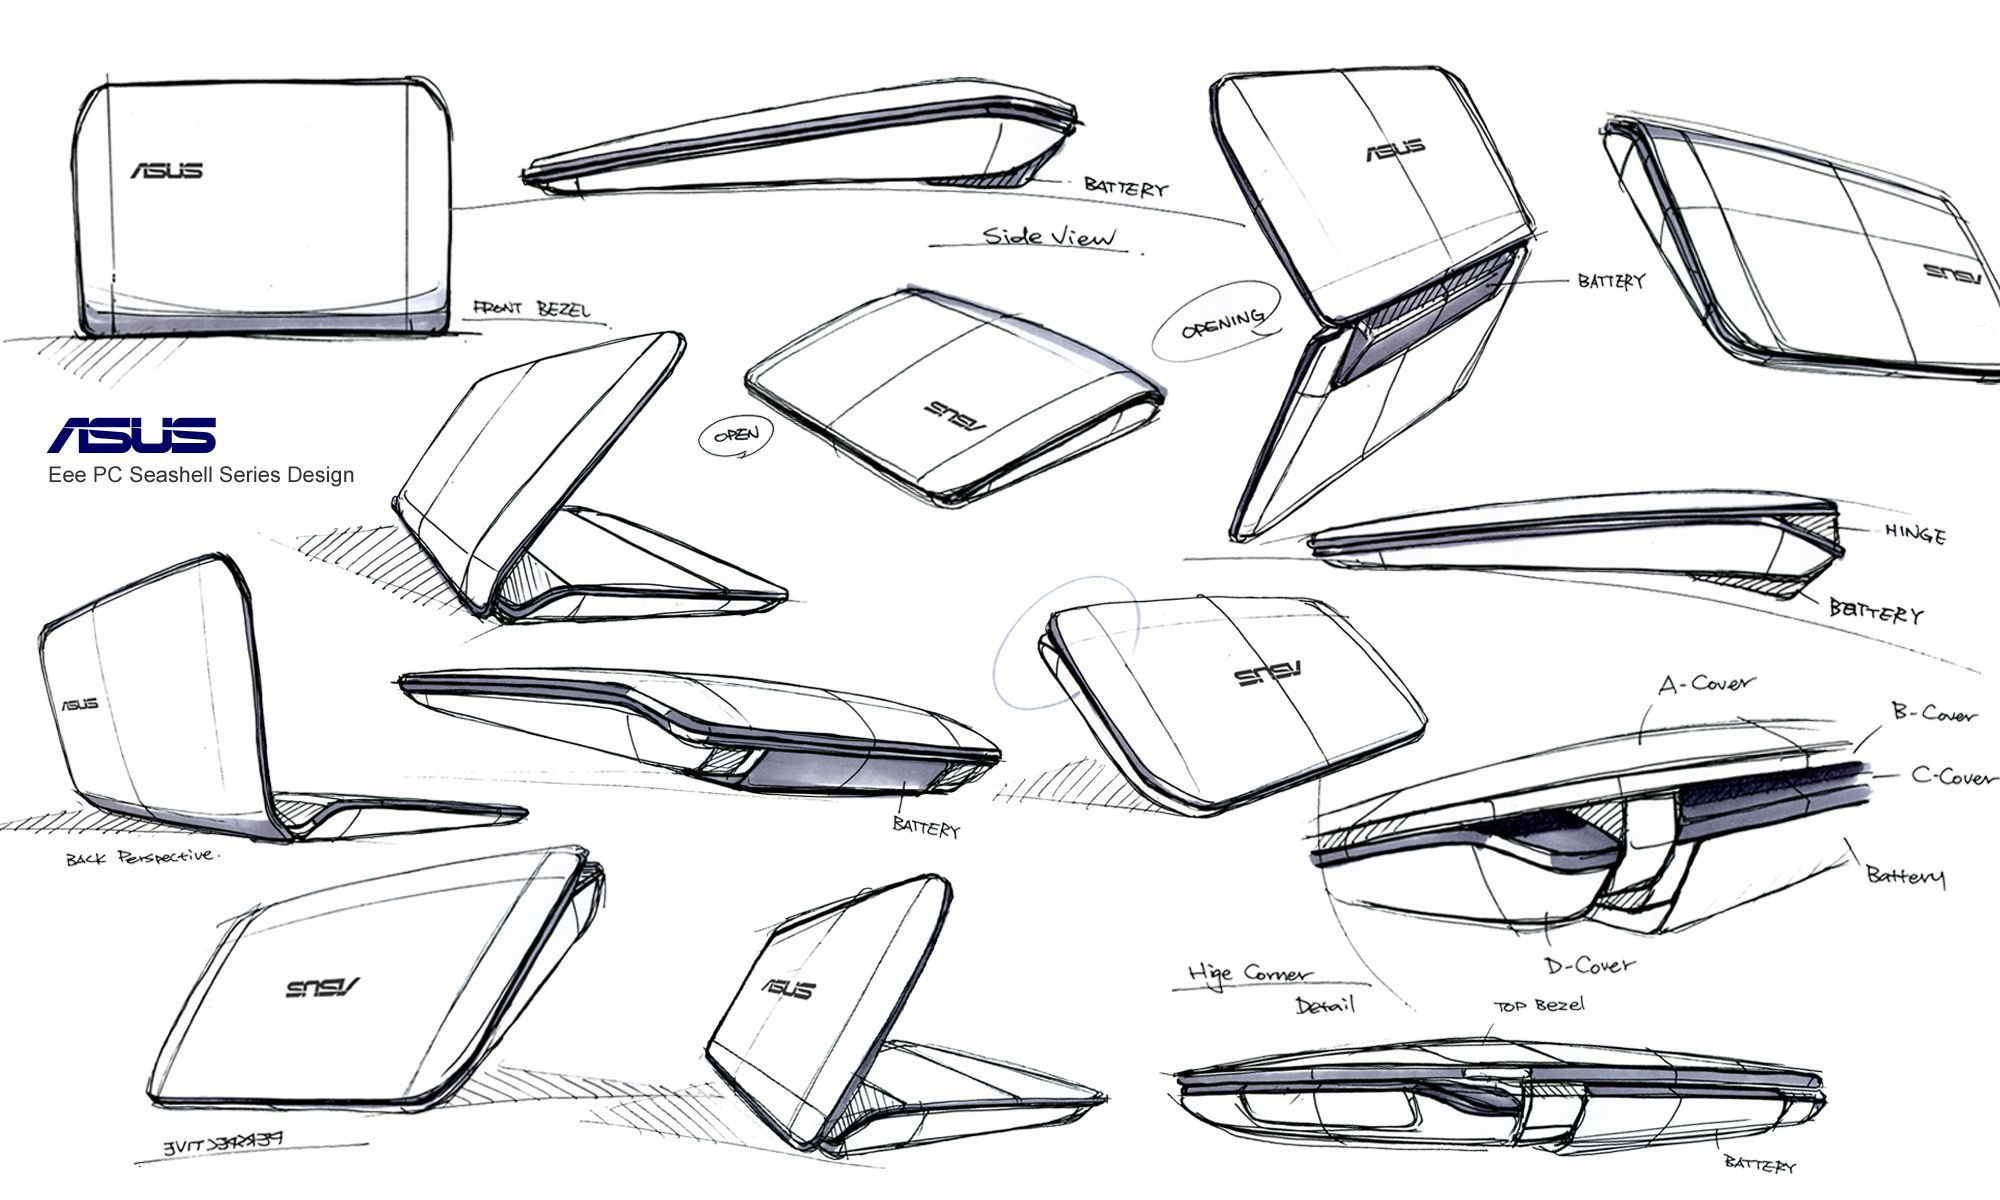 Design sketch by hank chien cheng chen at for Industrial design product development